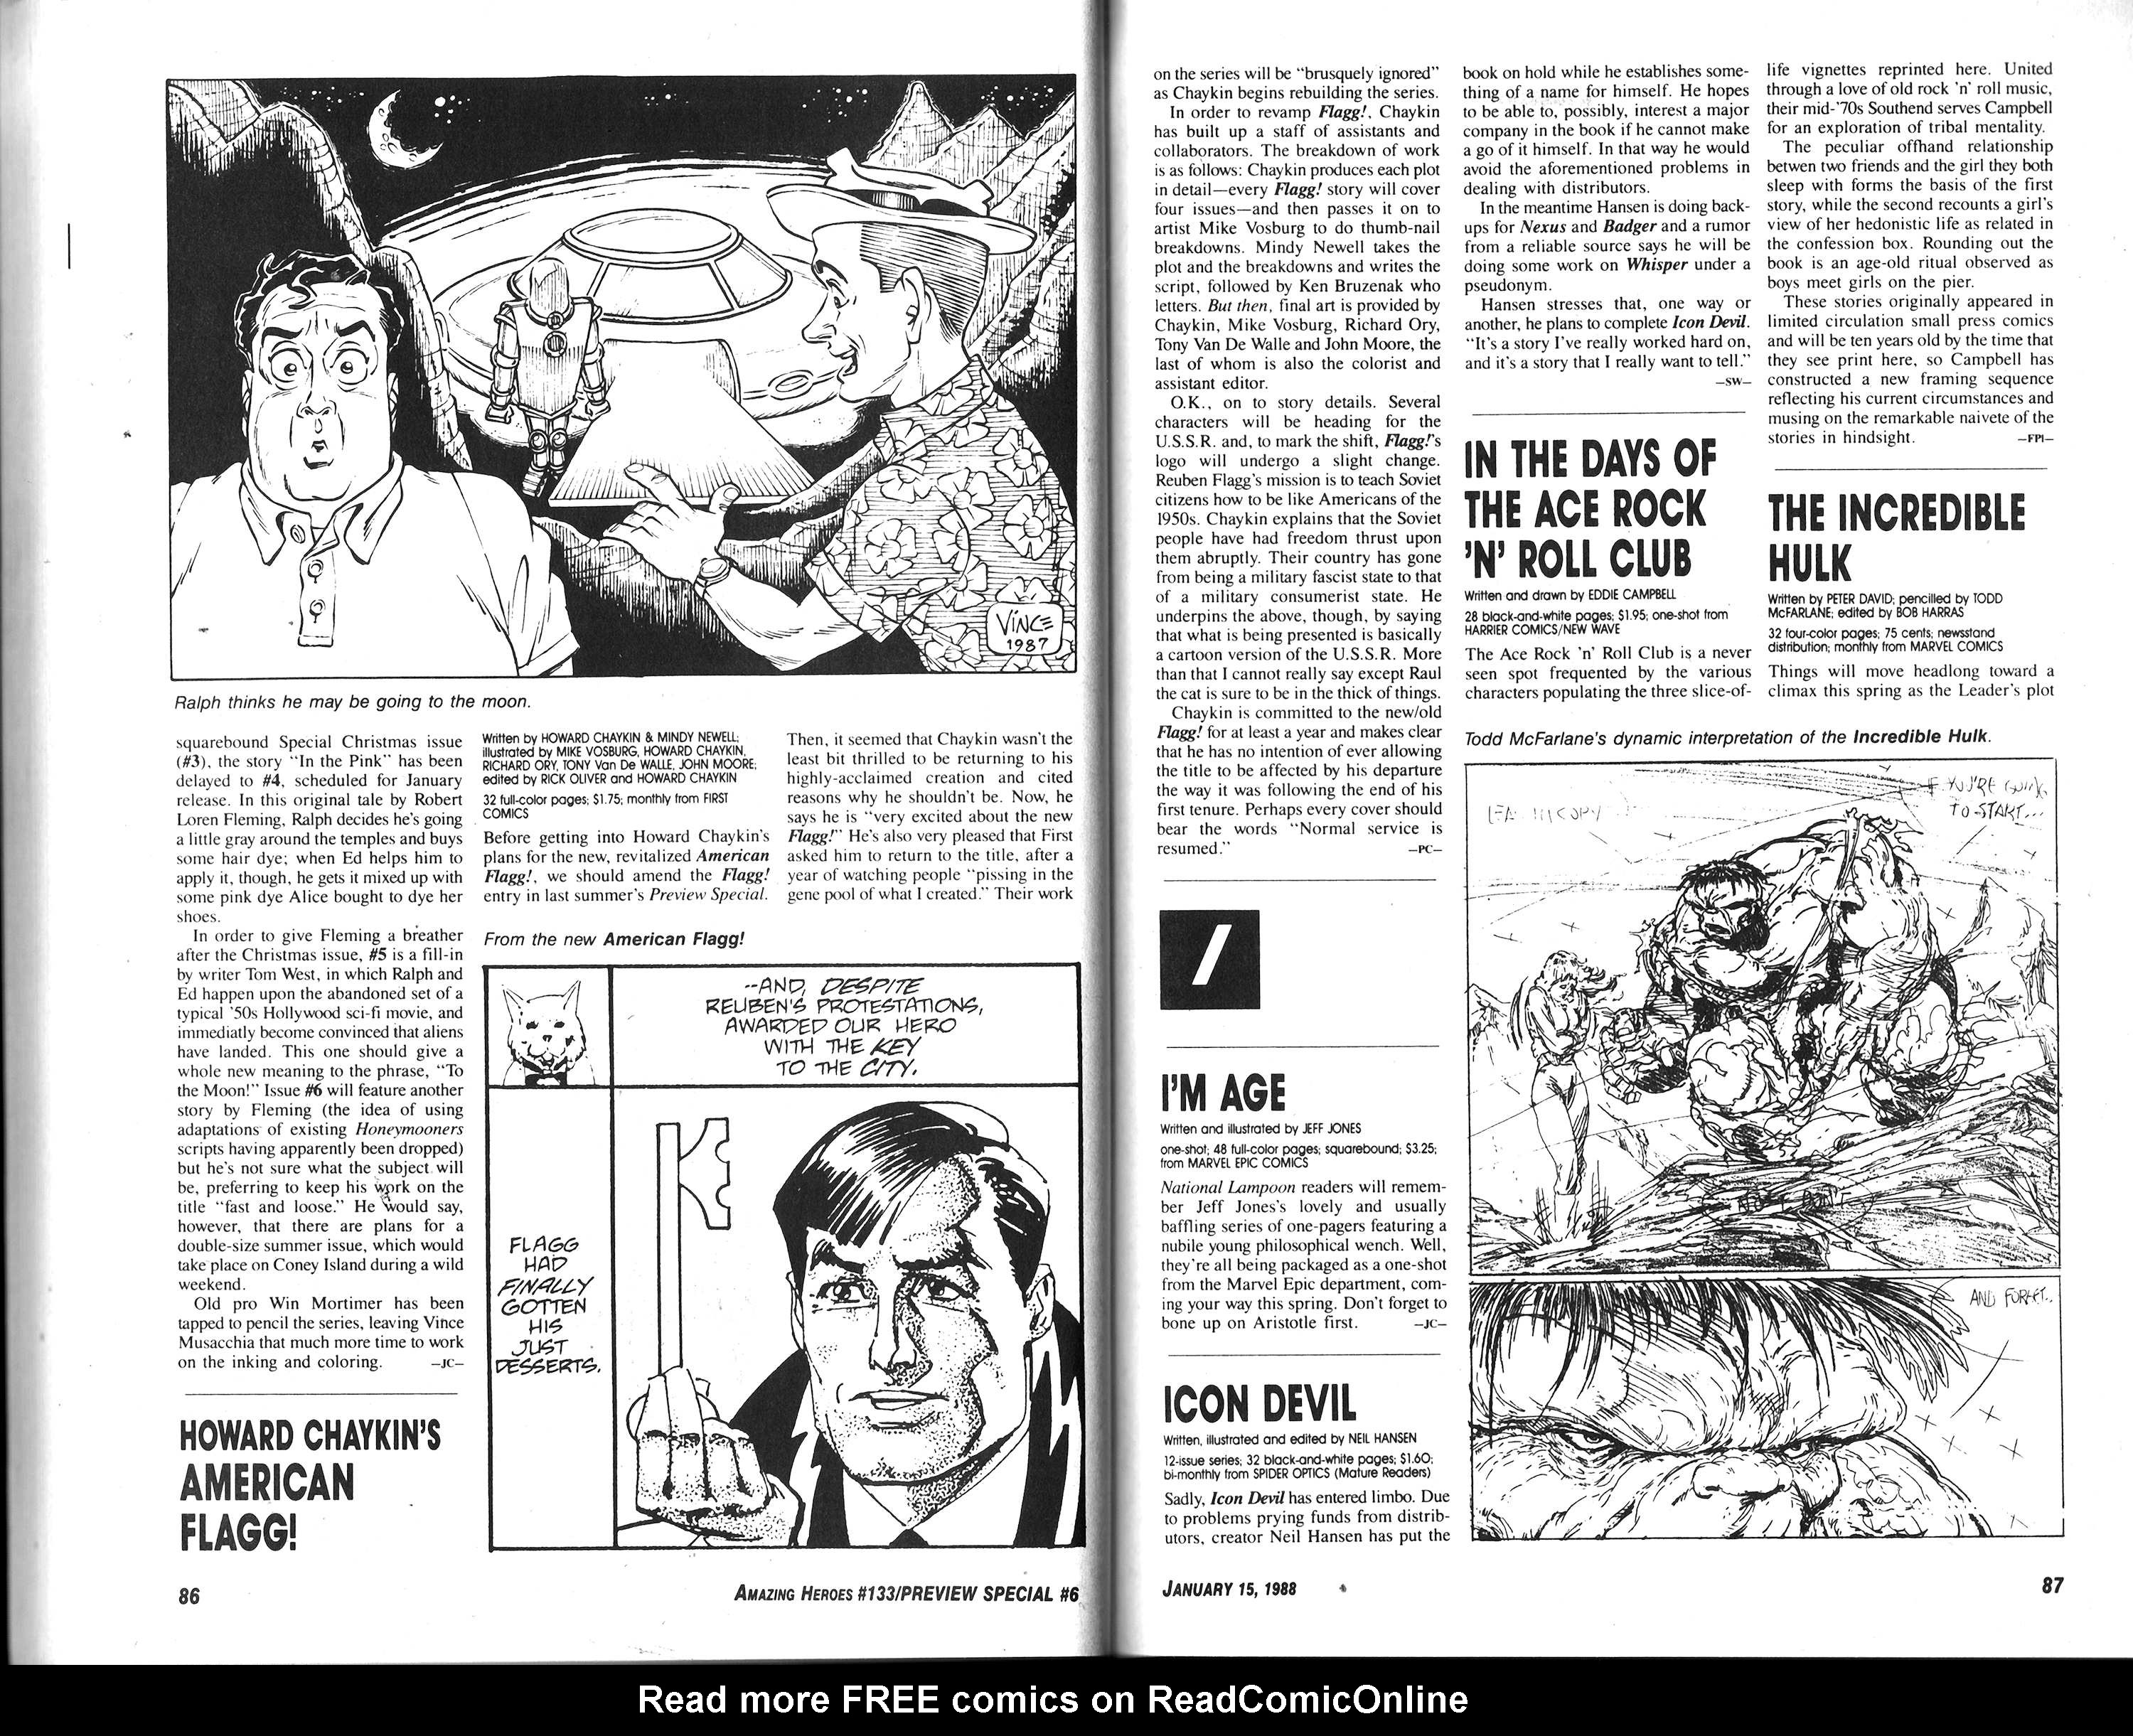 Read online Amazing Heroes comic -  Issue #133 - 45